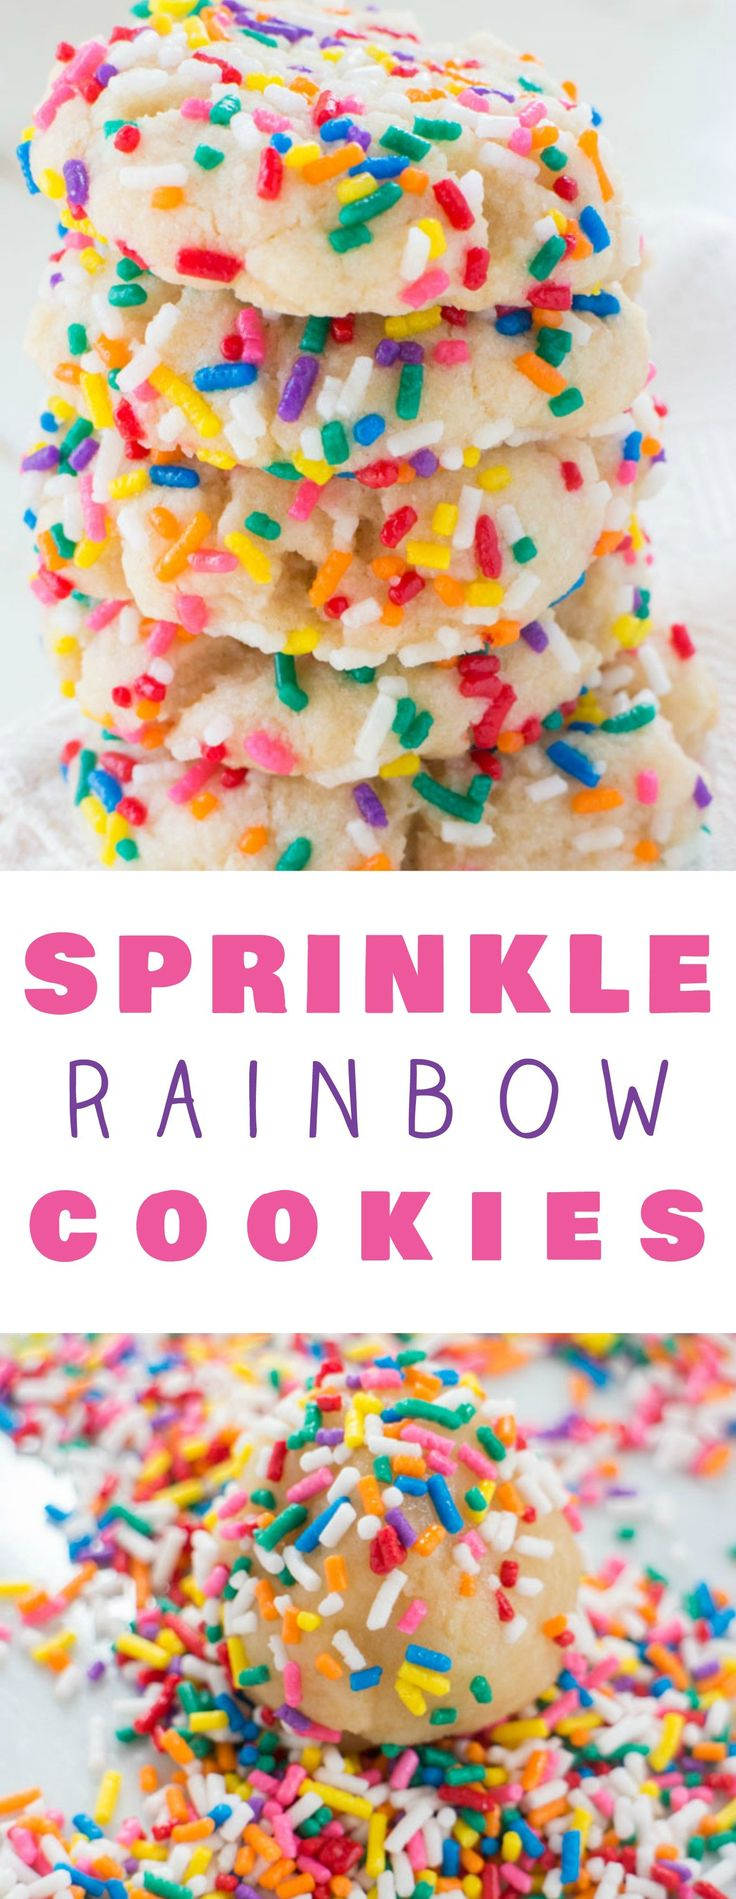 Rainbow Sprinkled Butter Cookies! These delicious cookies are easy to make and uses evaporated milk to make the cookies extra soft! They melt in your mouth! Roll them around in colored sprinkles to make them more fun! These cookies have so many reviews online for being the best!